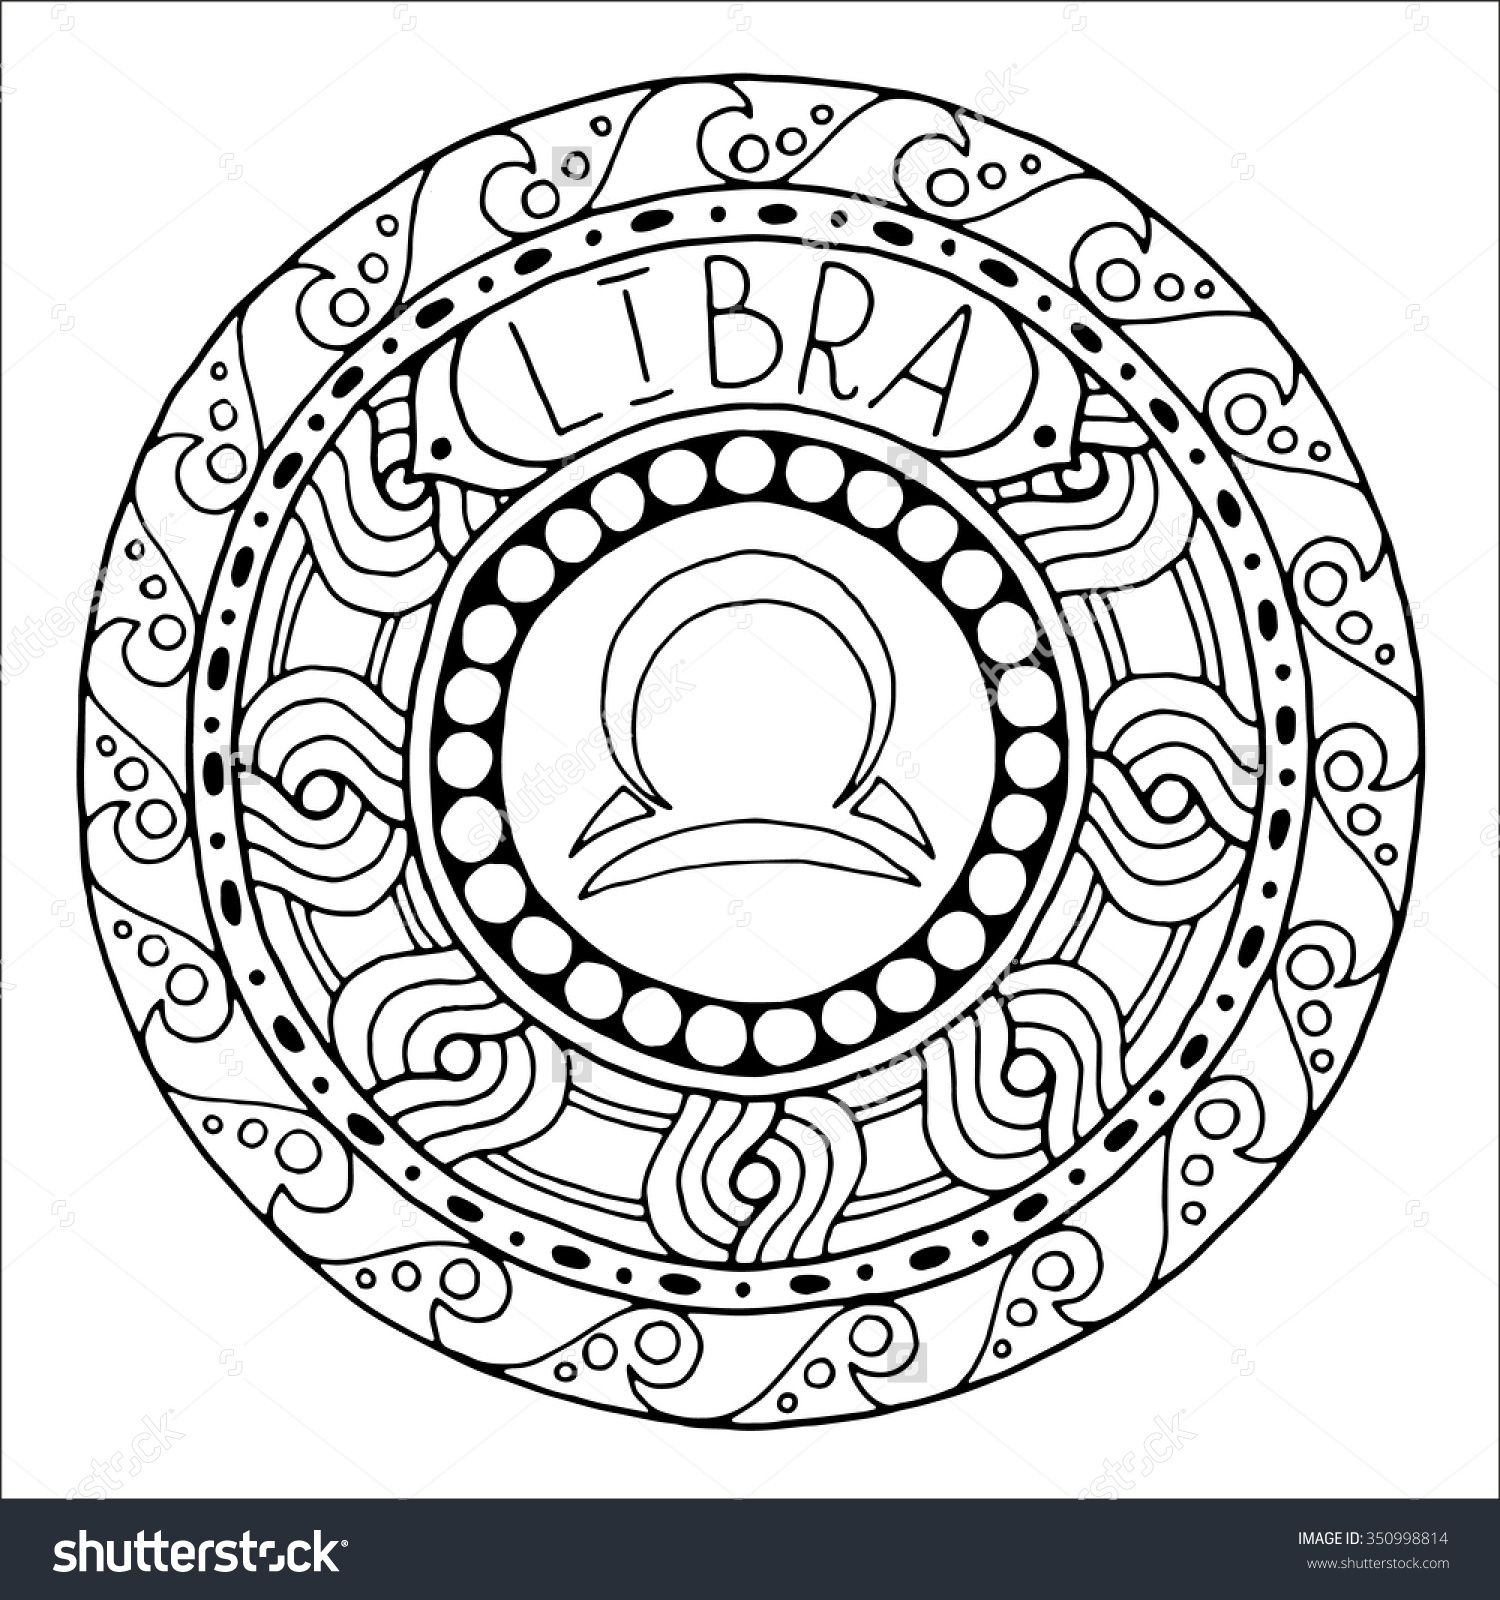 Free printable zodiac coloring pages - Horoscope And Zodiacal Template Can Be Used For Magazine Coloring Book Hand Drawn Doodle Circle